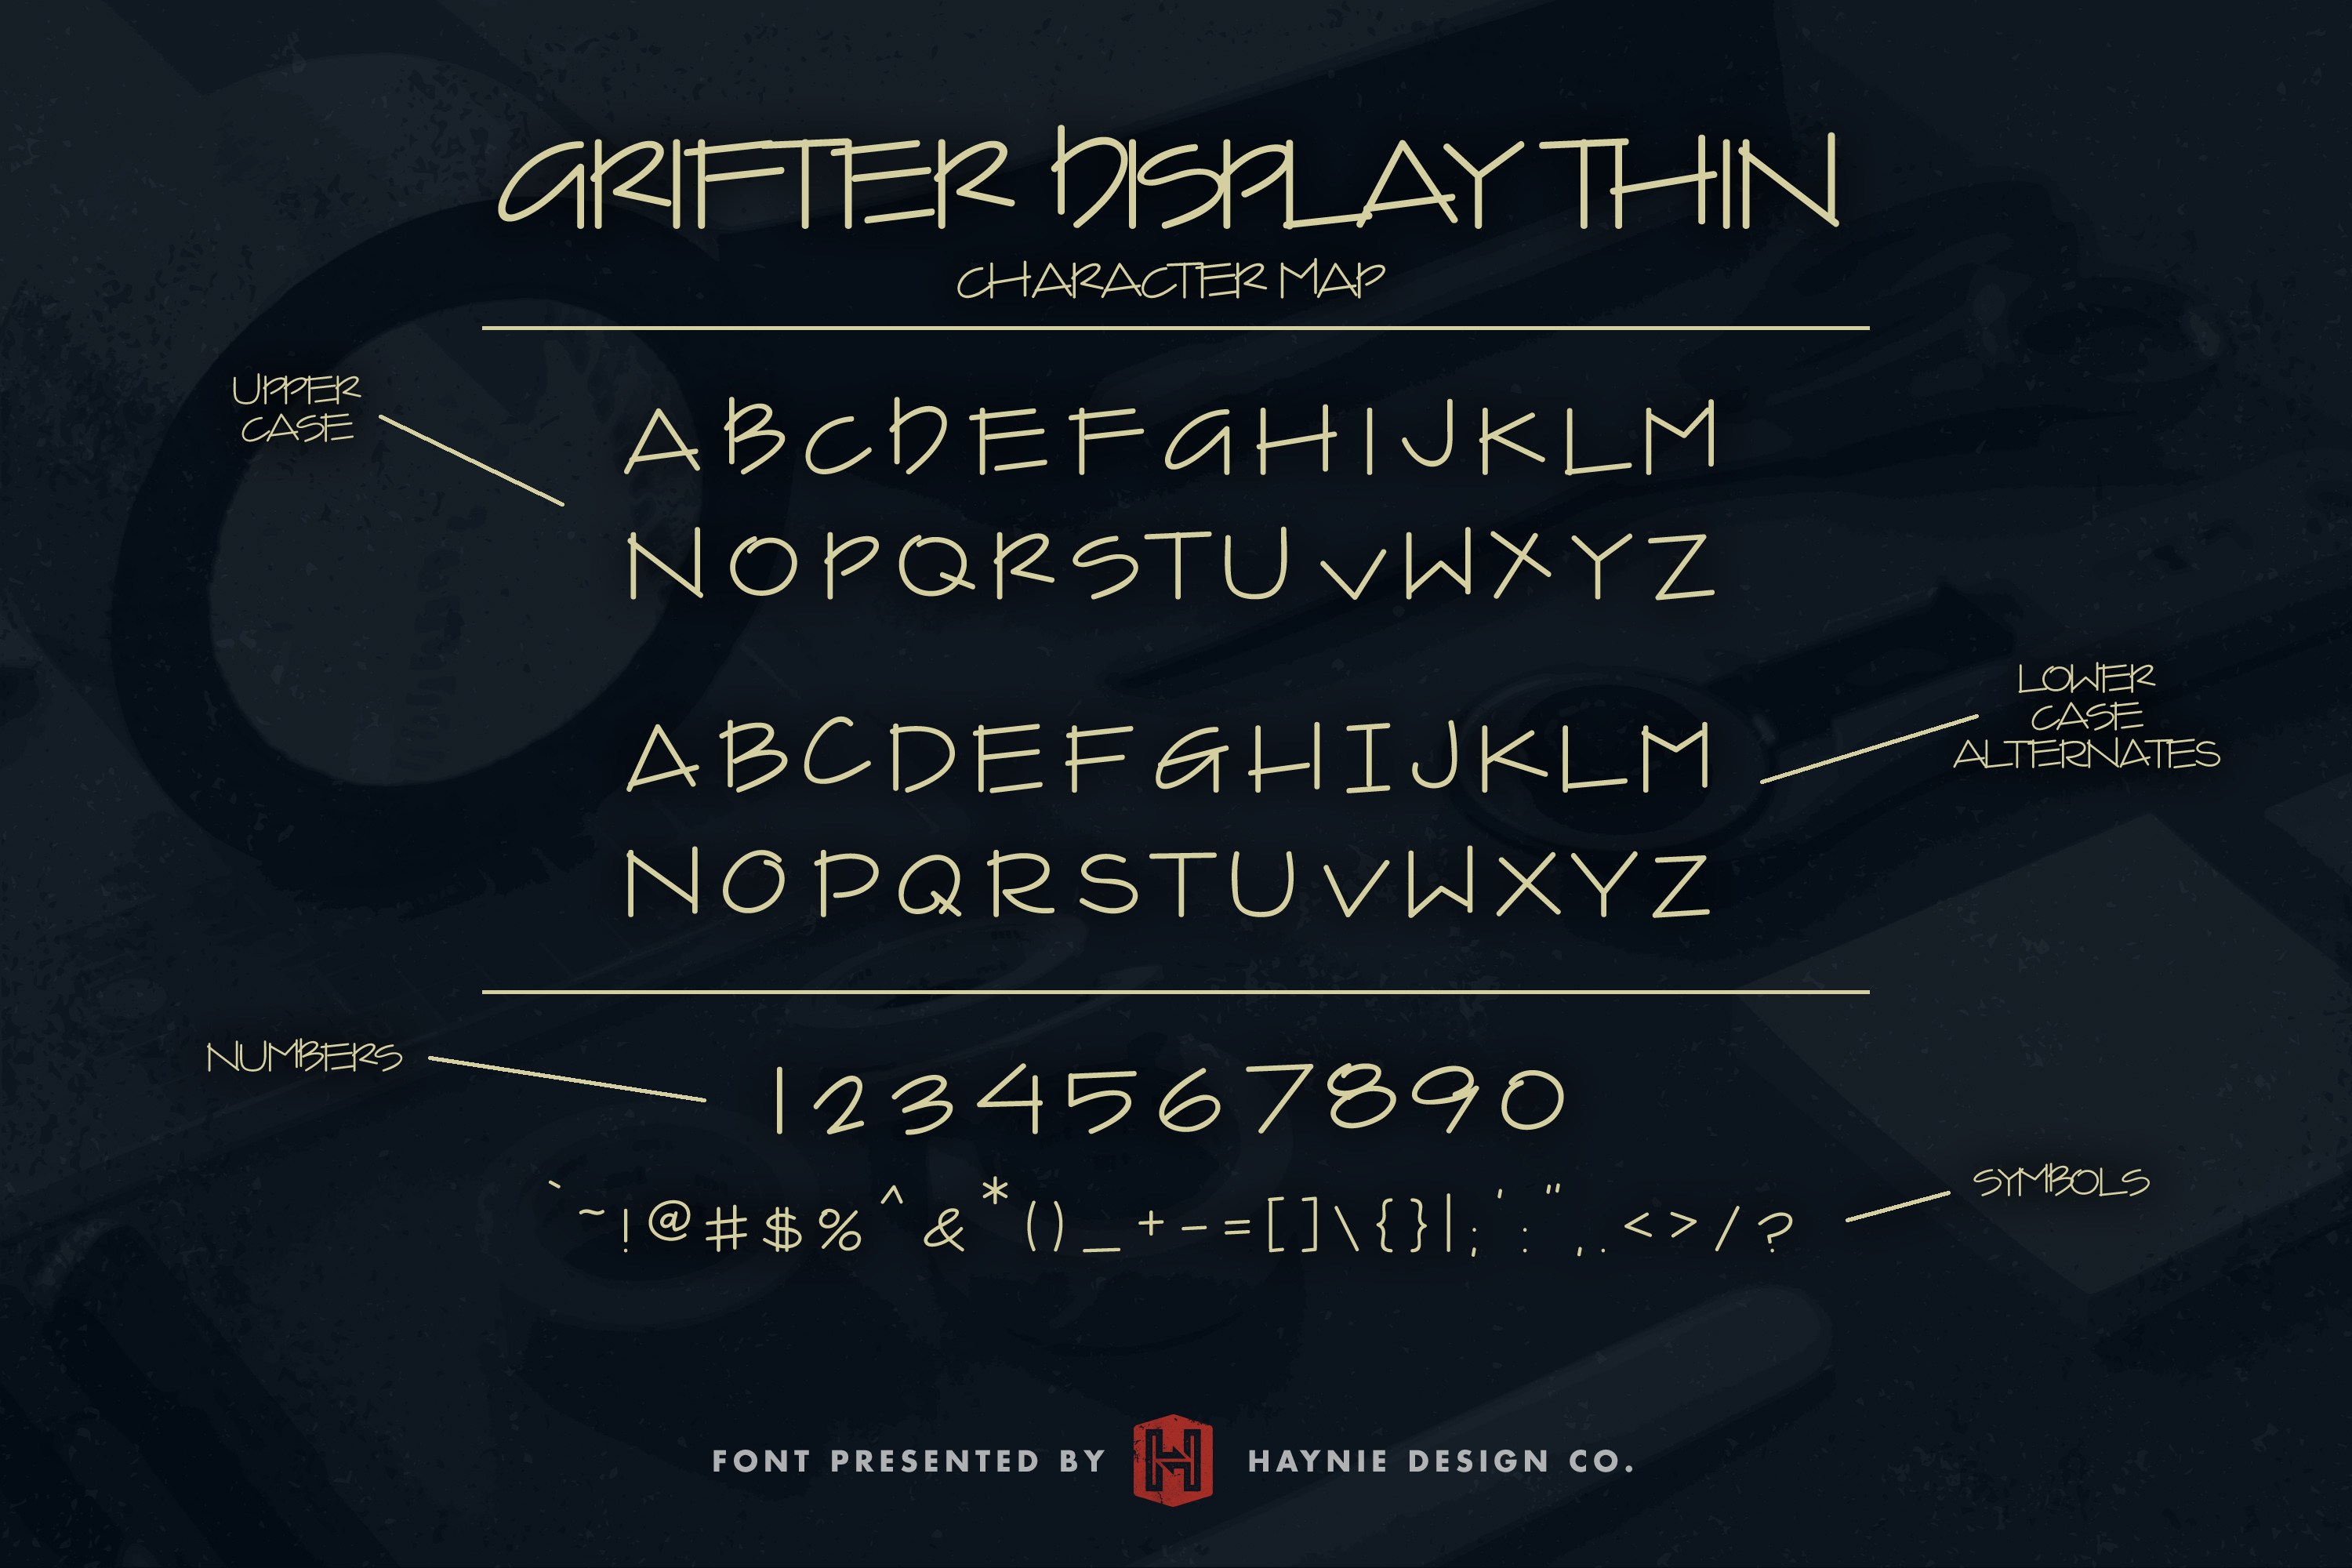 Grifter architect blueprint handwriting font bundles grifter architect blueprint handwriting font example image 5 malvernweather